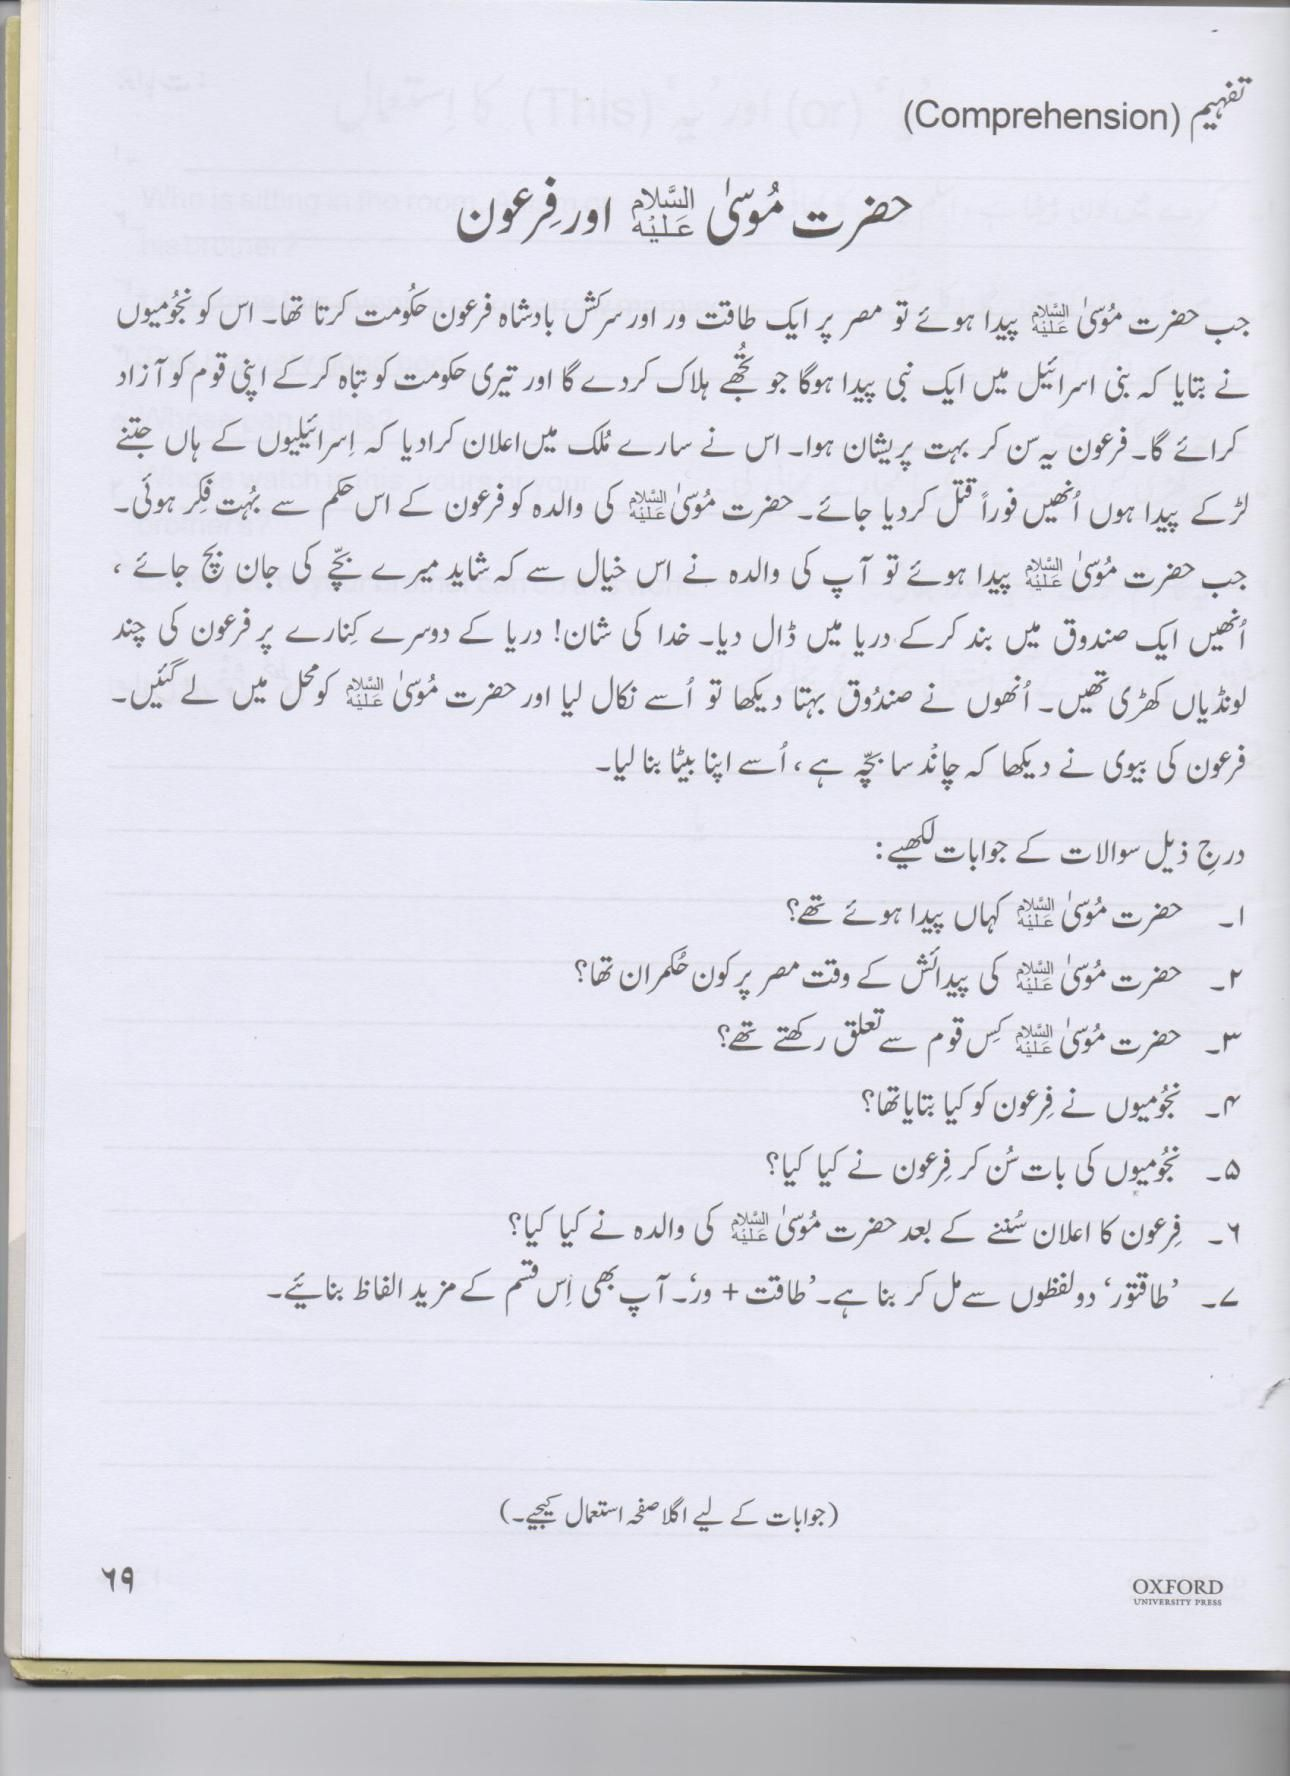 Urdu Blog Worksheet Class 4 10 11 16 Comprehension Worksheets 3rd Grade Math Worksheets 2nd Grade Worksheets